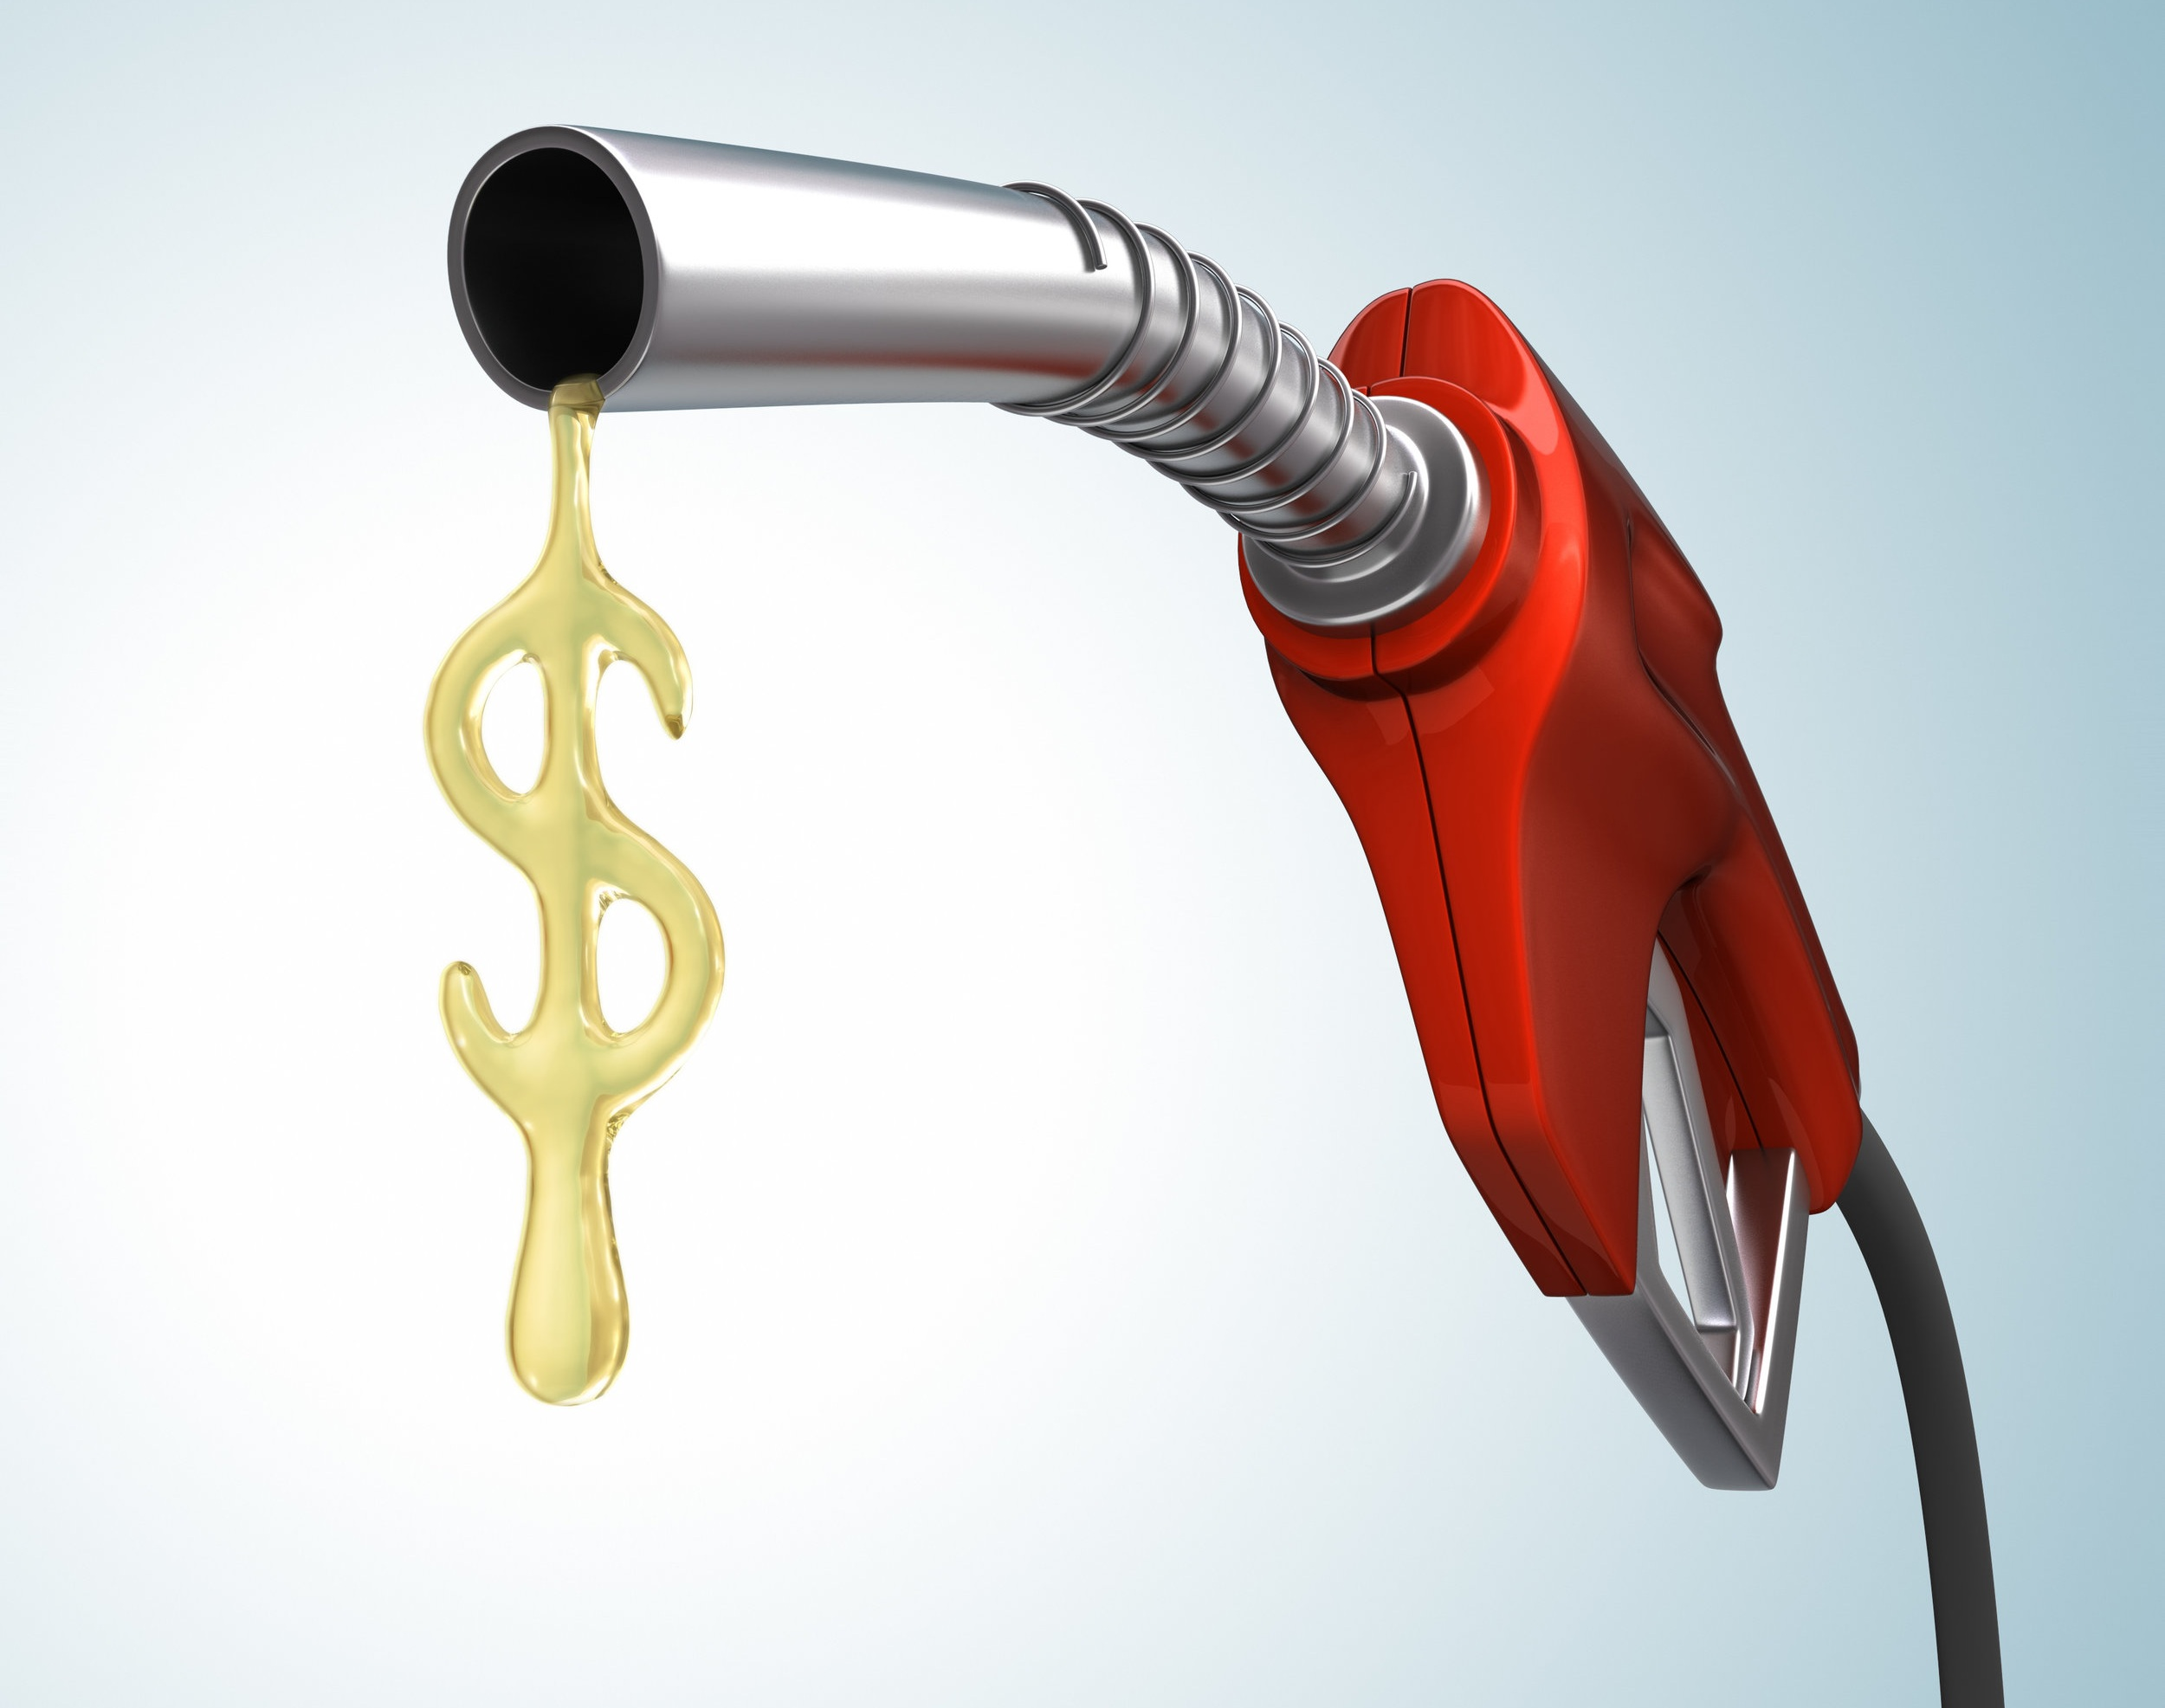 The Logistical Impact of Low Fuel Prices